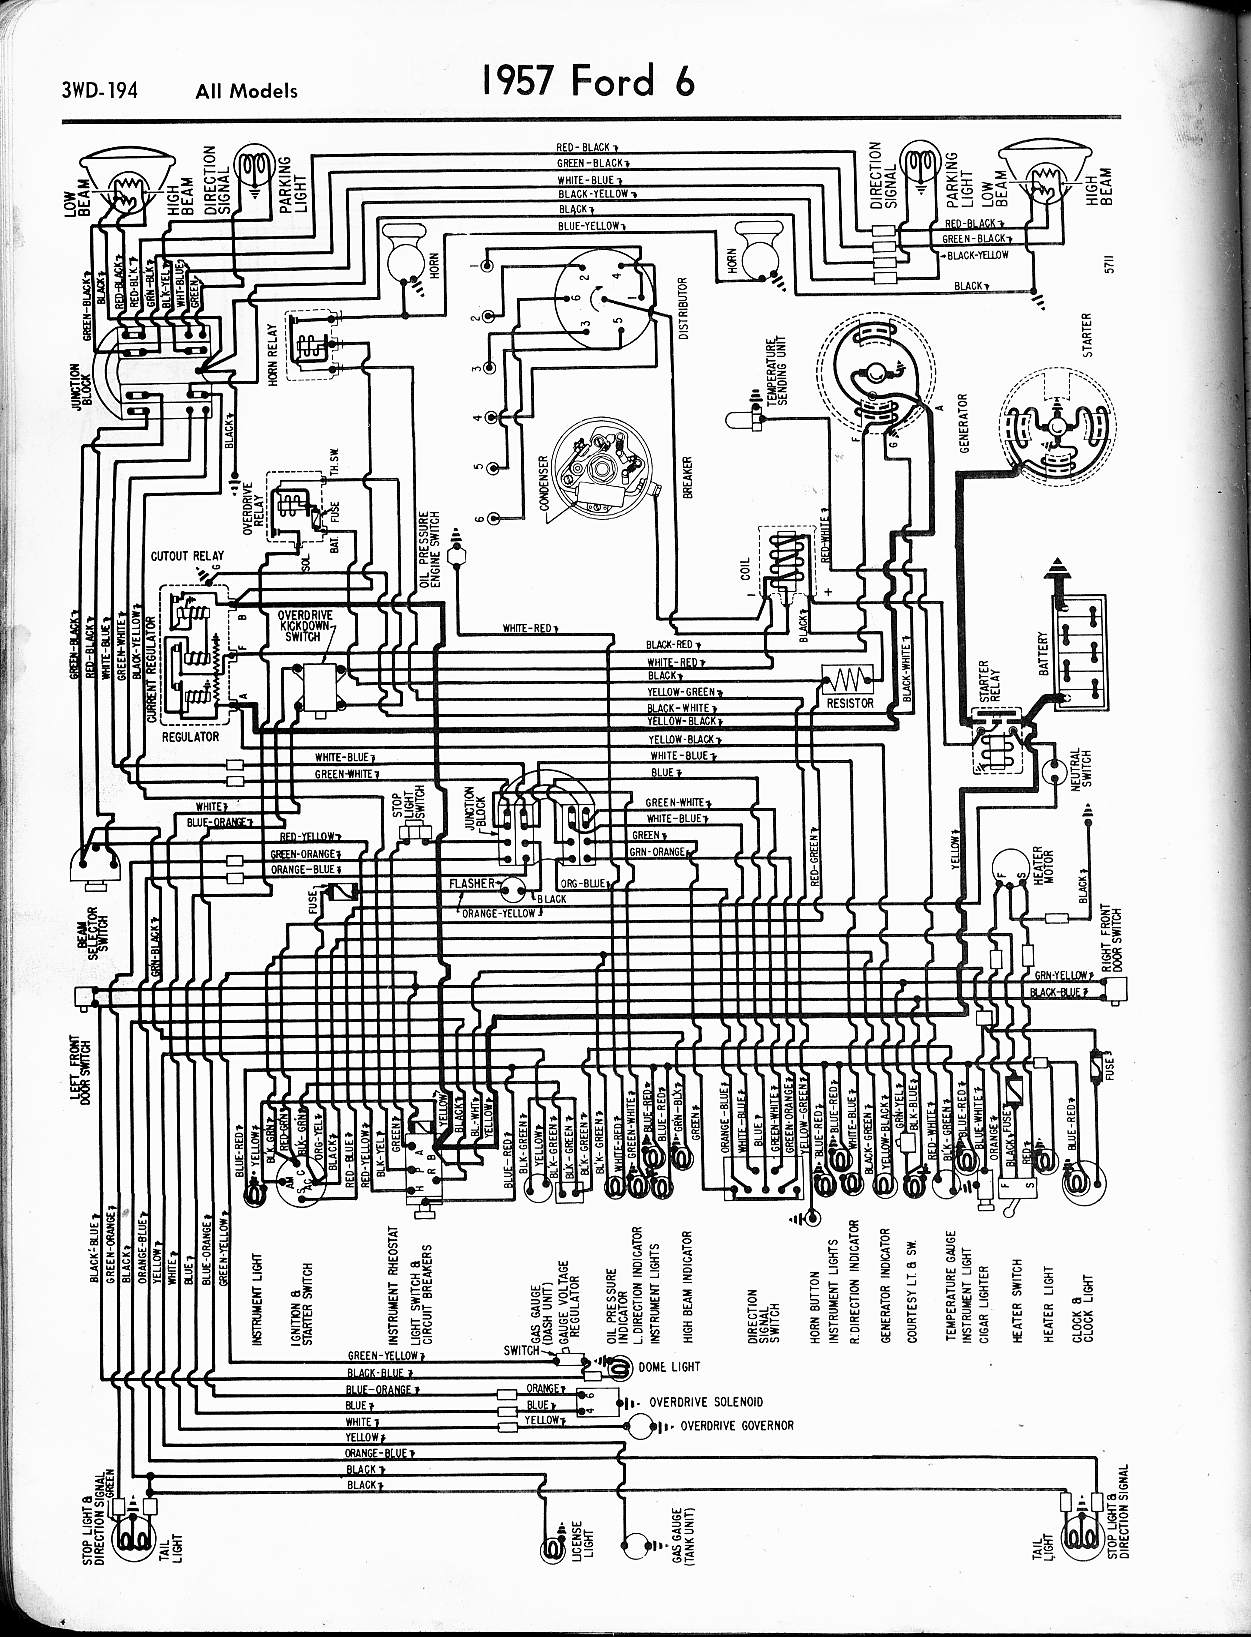 12 volt generator wiring diagram 12 volt generator wiring diagram ford fairlane 1957 ranchero - ford truck enthusiasts forums